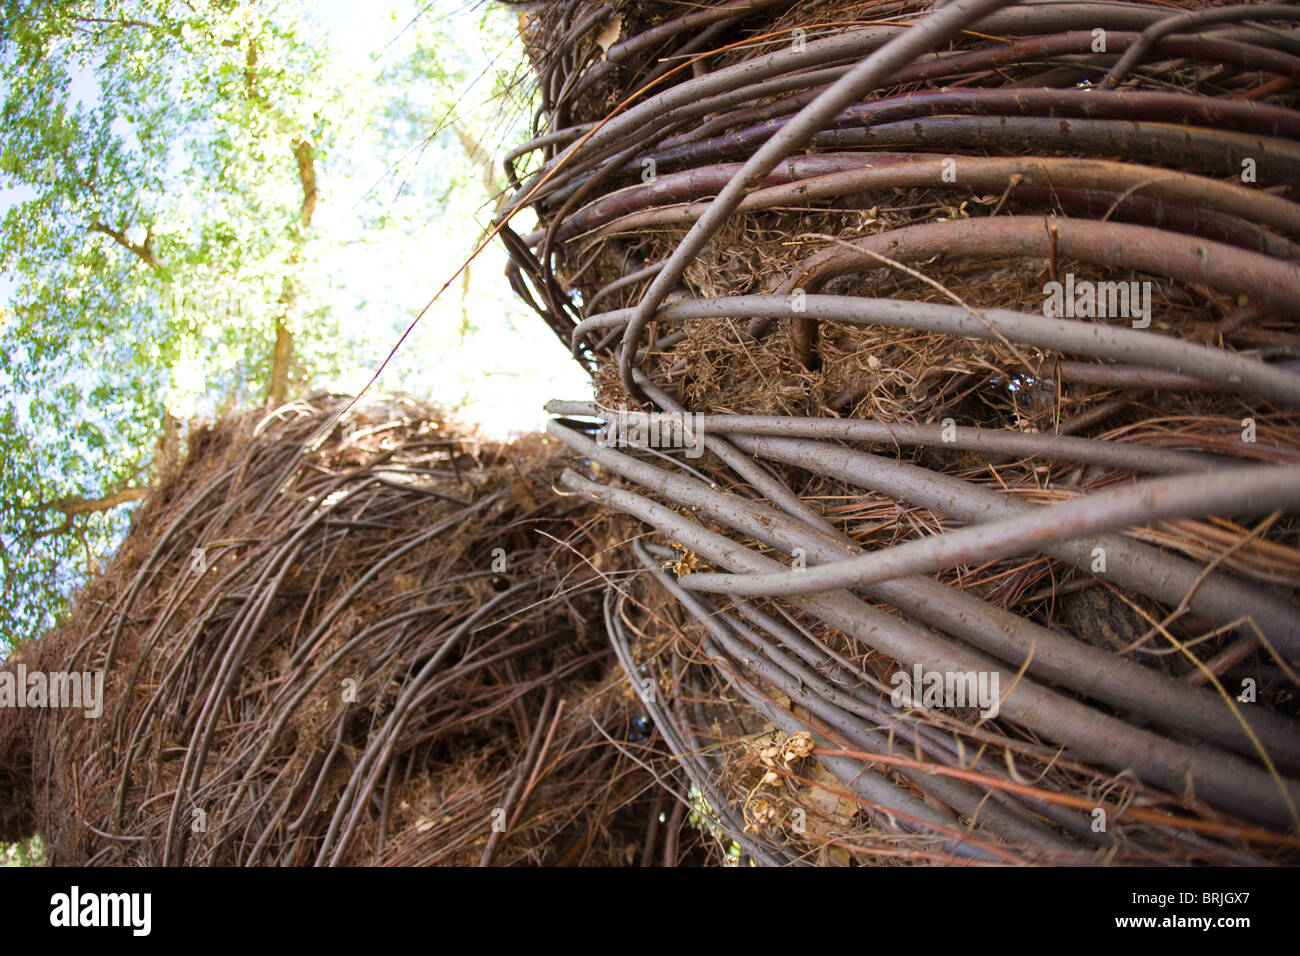 close up of forest shelter made of woven sticks, root, vine, tree branches - Stock Image